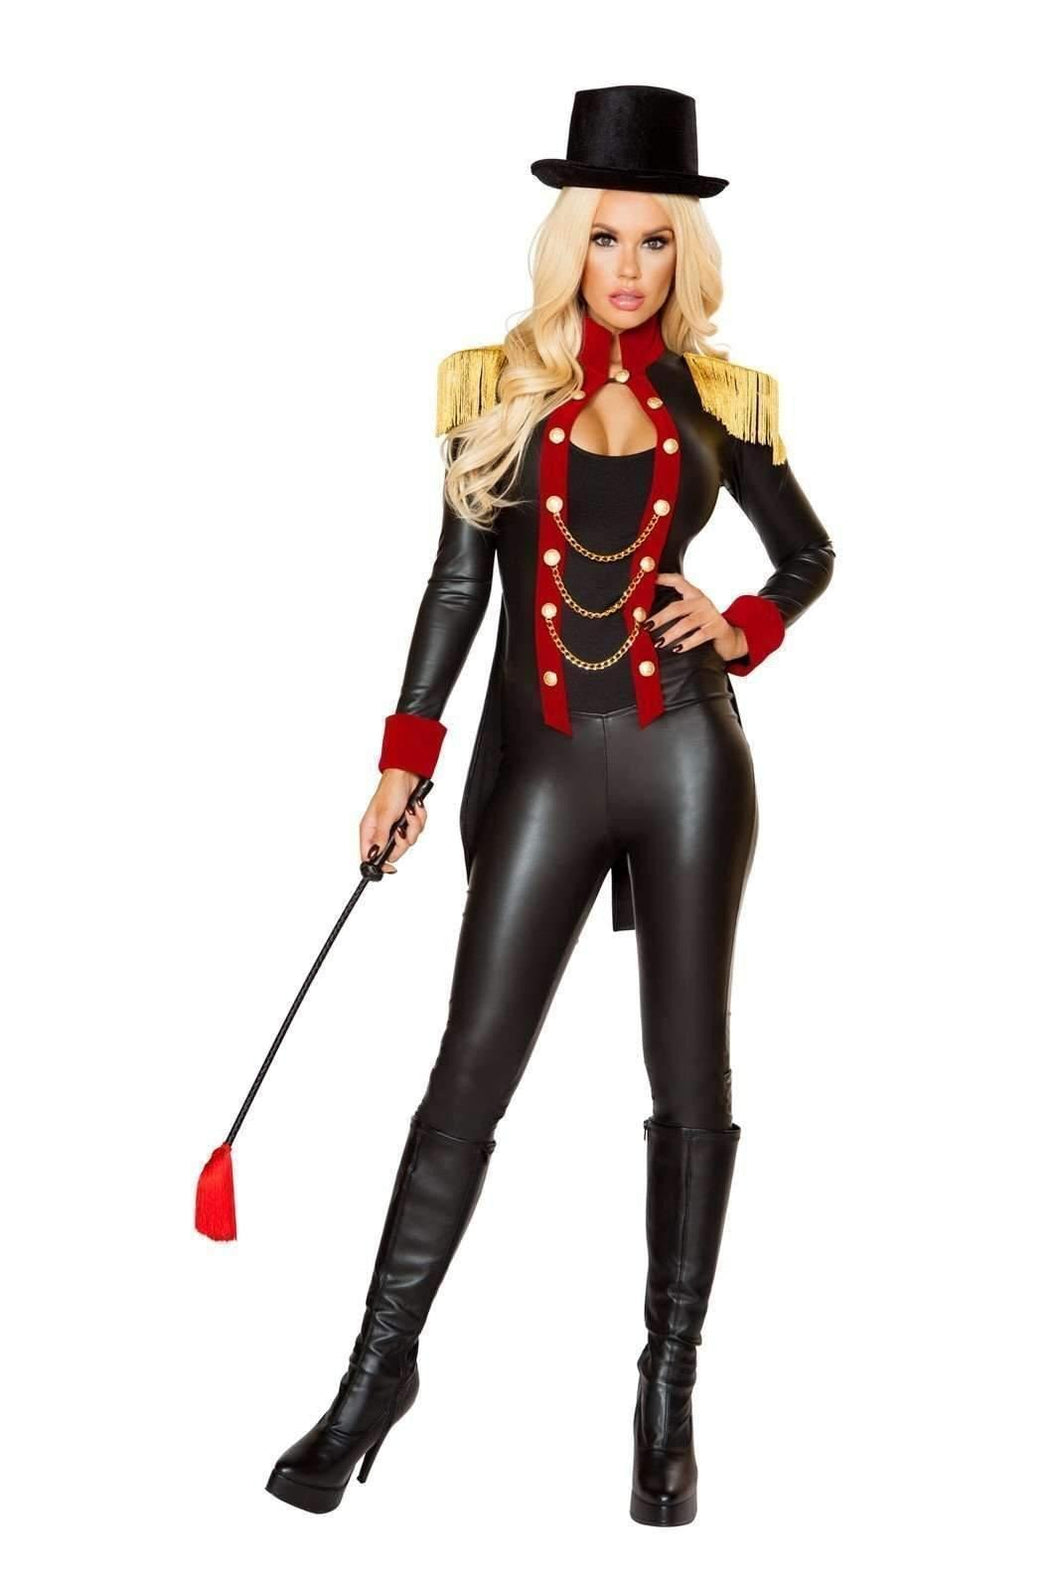 Roma Costume 4822 - 2Pc Sassy Ringleader-Costumes-Roma-Small-Black/Red/Gold-Unspoken Fashion